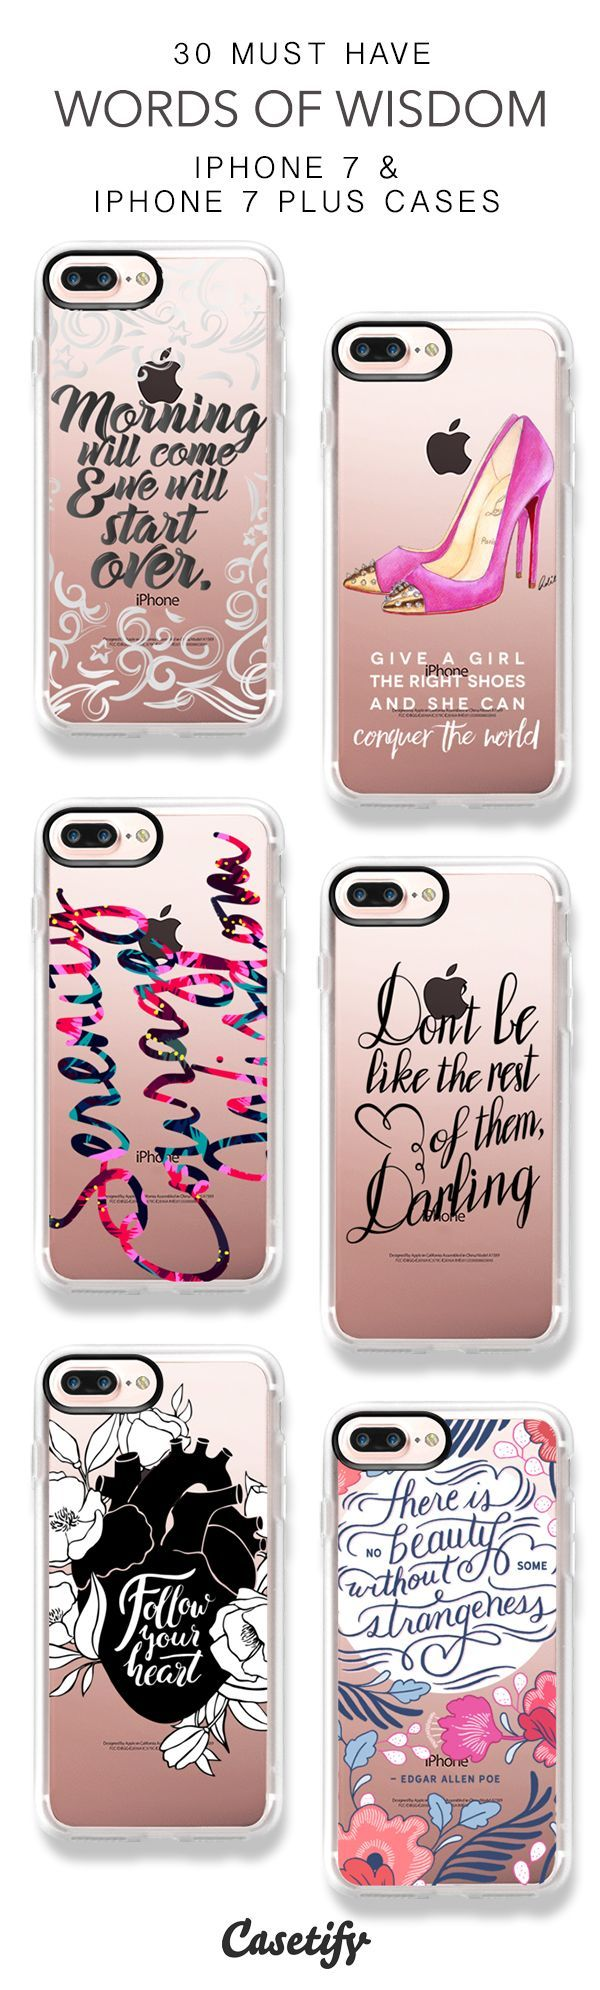 30 Must Have Words Of Wisdom Protective iPhone 7 Cases and iPhone 7 Plus Cases. More Quotes iPhone case here > https://www.casetify.com/collections/top_100_designs#/?vc=Bu1I9KrawJ (scheduled via http://www.tailwindapp.com?utm_source=pinterest&utm_medium=twpin&utm_content=post158229259&utm_campaign=scheduler_attribution) #iphone6scase,